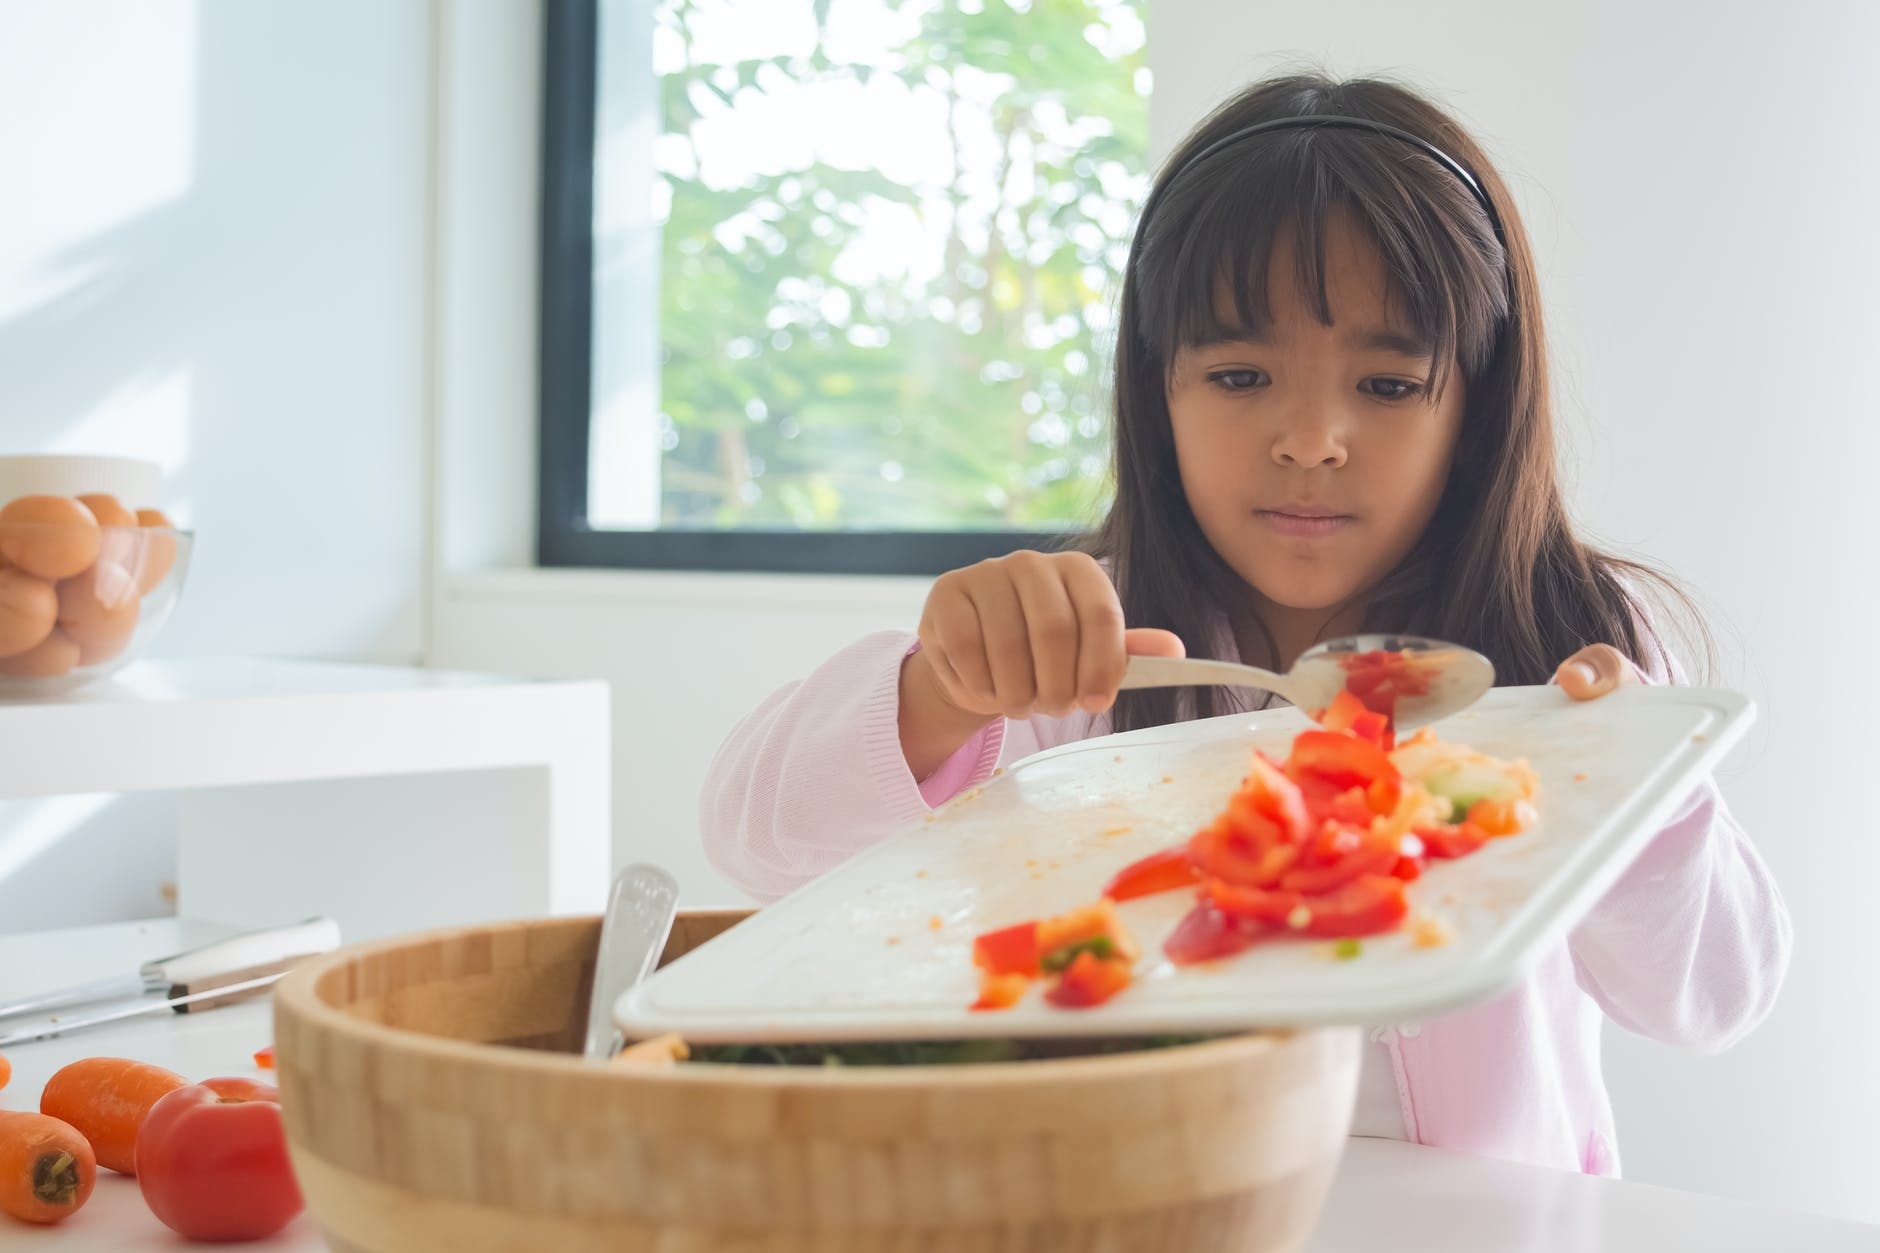 girl holding chopping board with sliced tomatoes